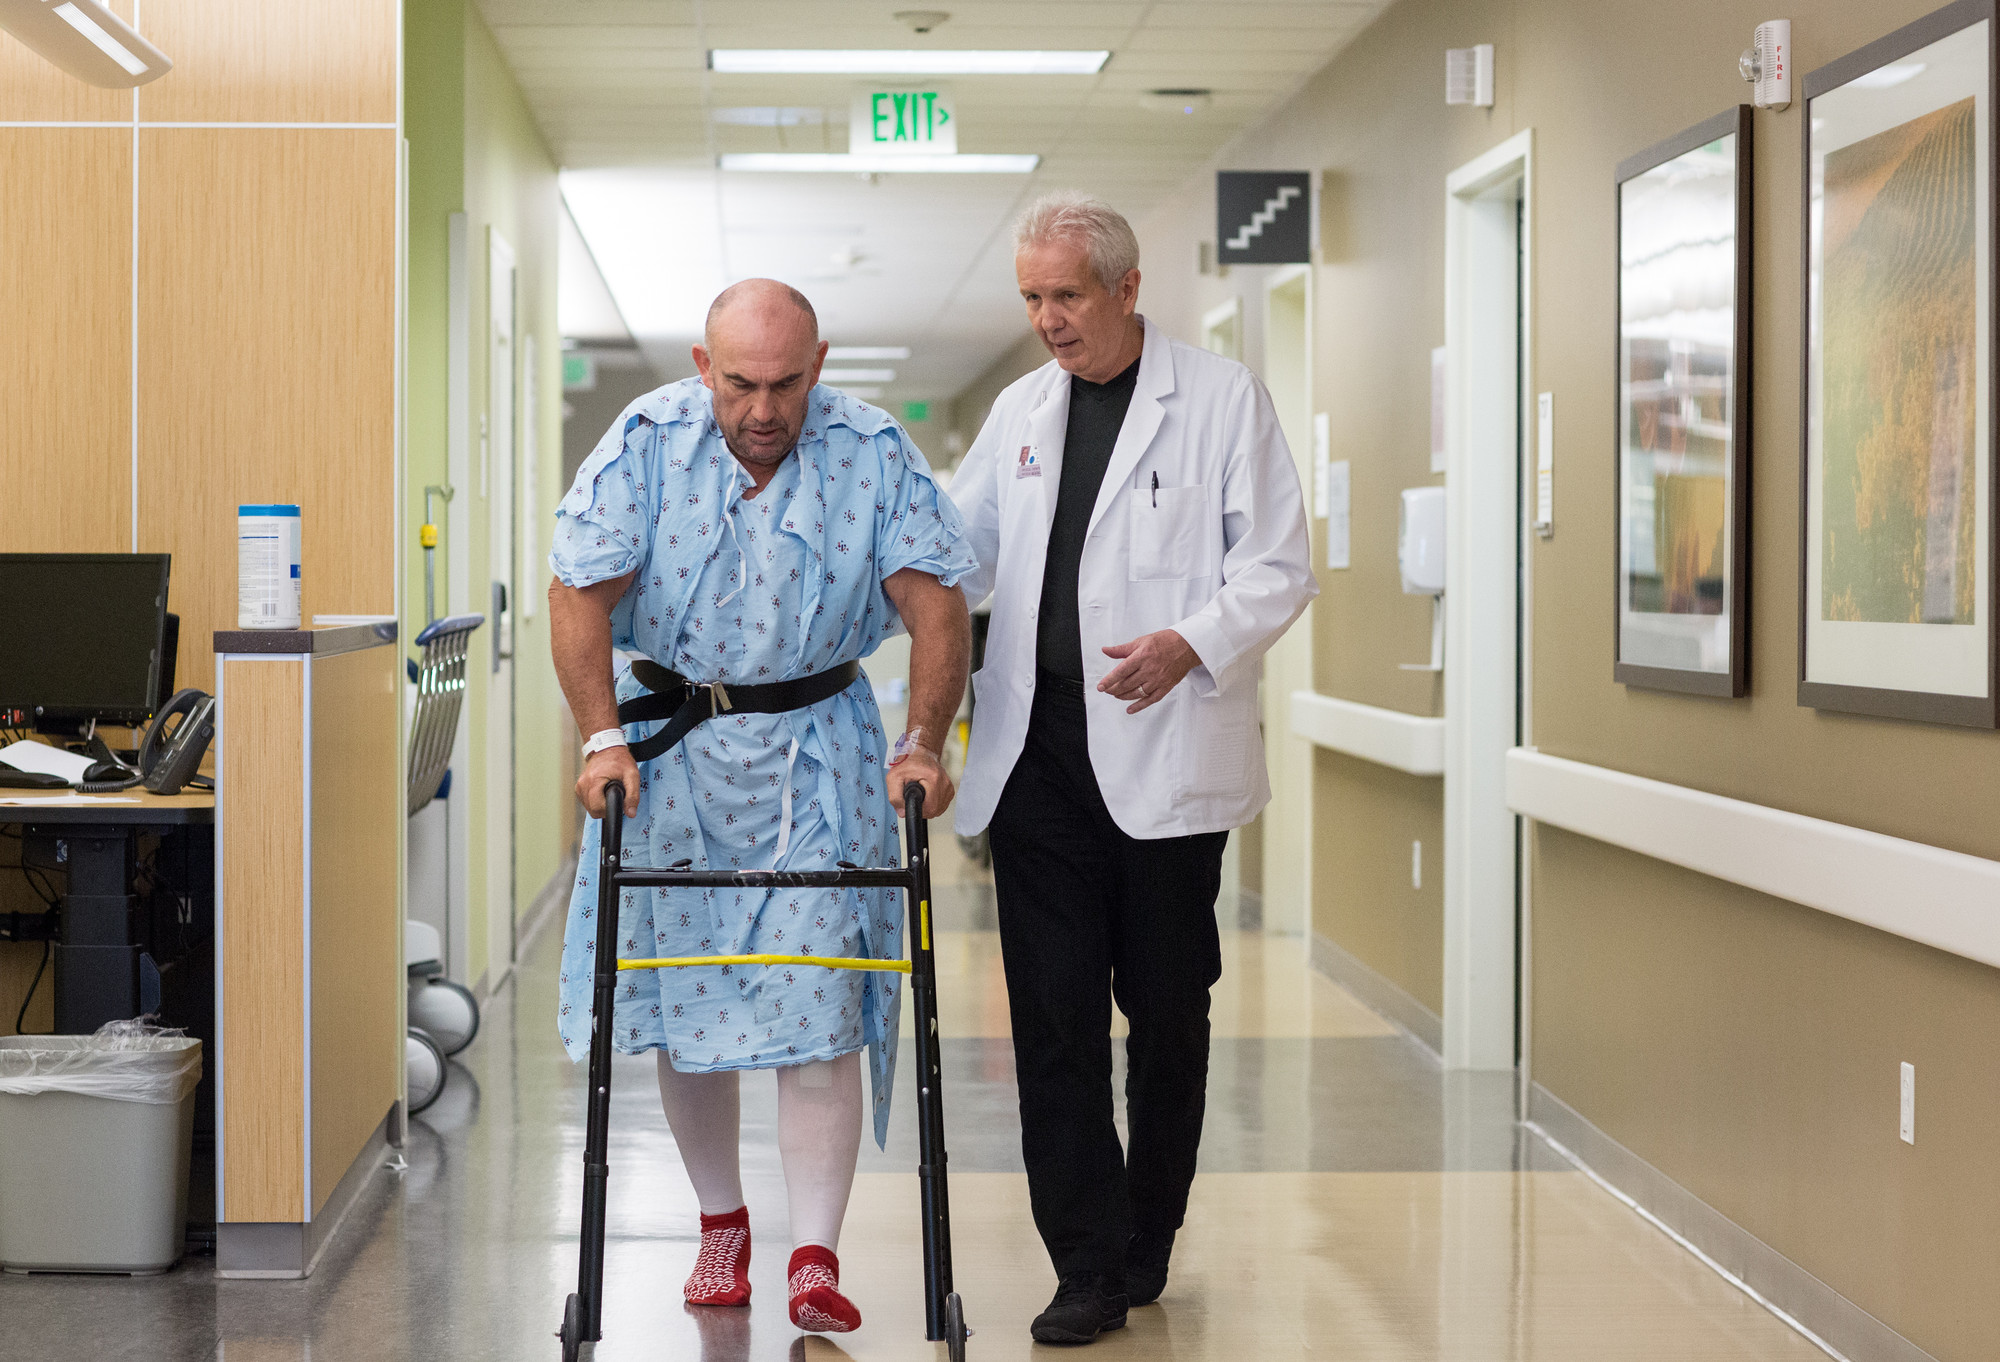 Doctor and elderly patient with walker.